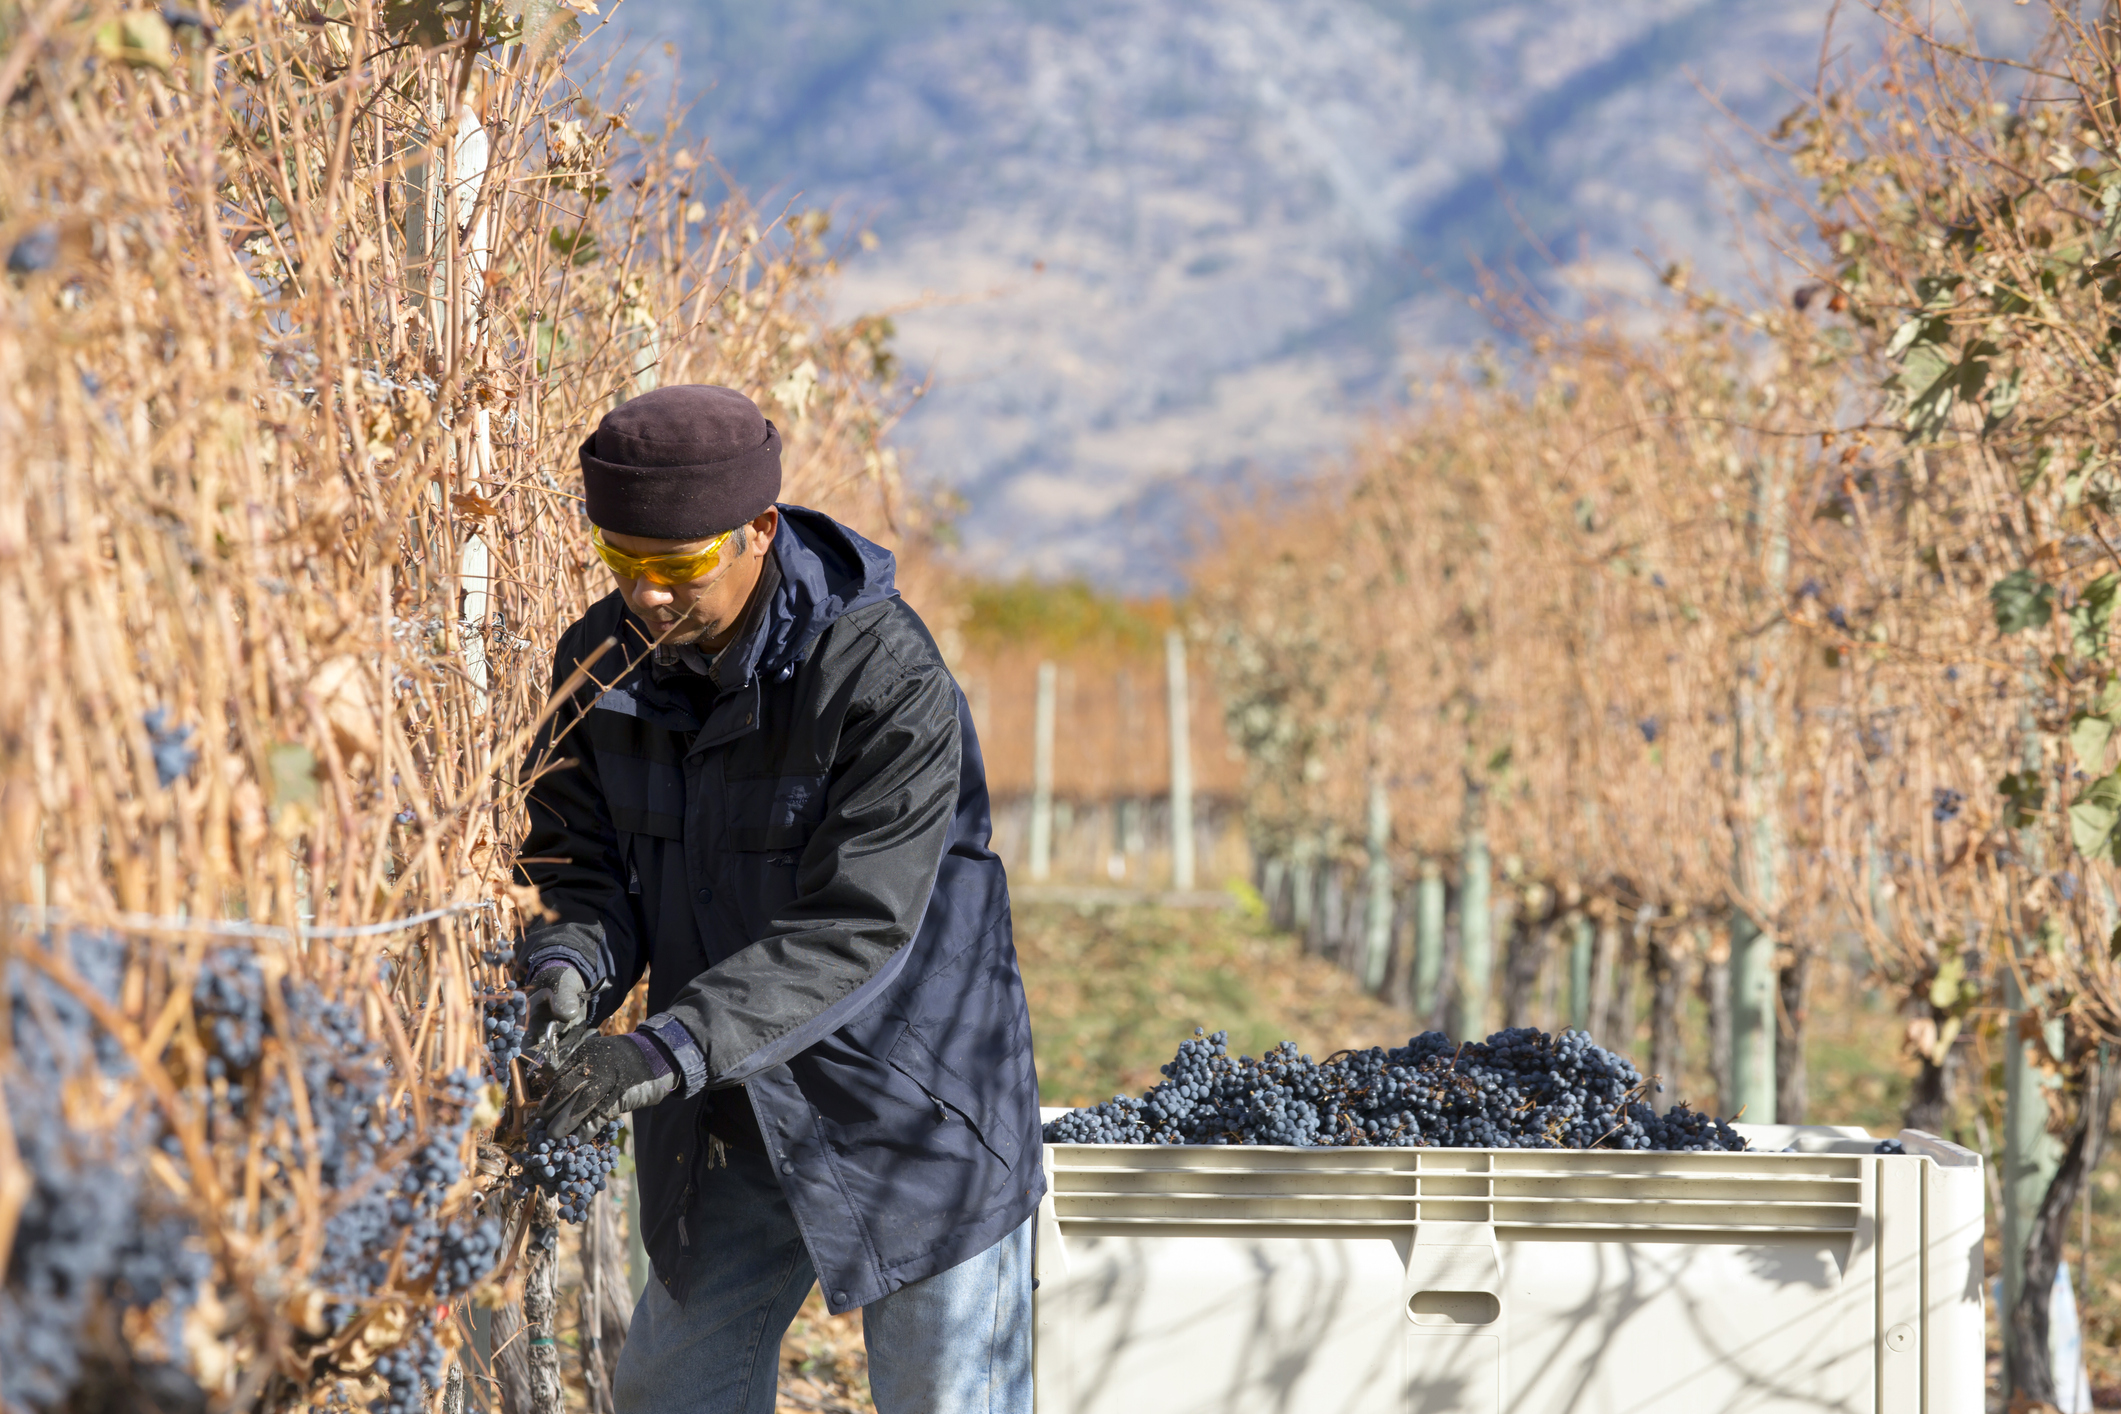 person harvesting grapes